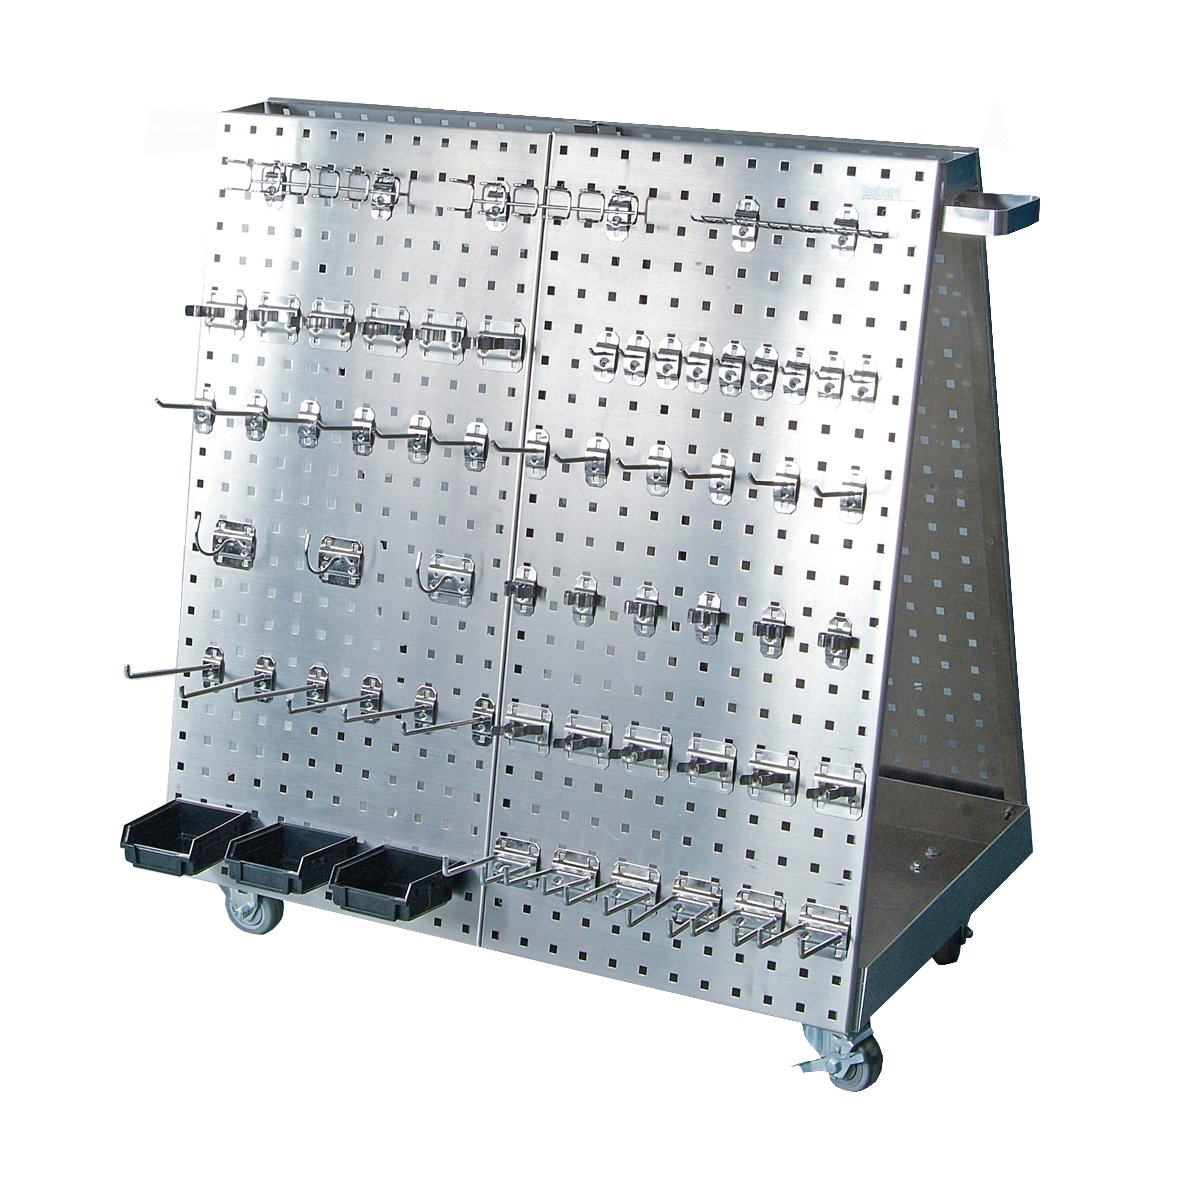 Triton Products 36-3/4 In. L x 39-1/4 In. H x 21-1/4 In. W Anodized Aluminum Frame SS LocBoard Tool Cart with Tray, 60 pc SS LocHook Asst & 3 Hanging Bins